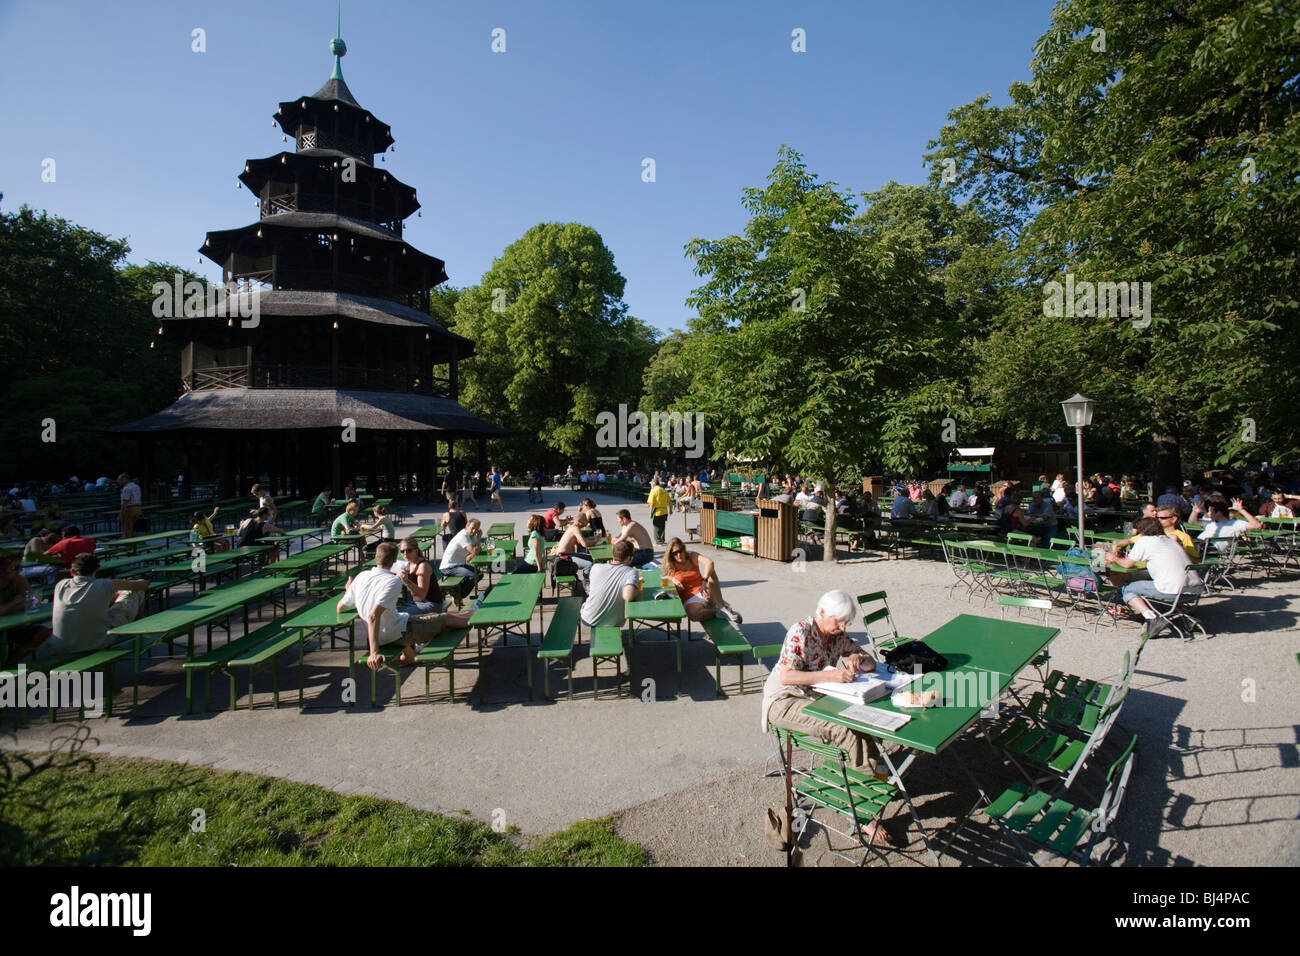 The Chinese tower Pagoda 1789 Beergarden or beergarten at the English Gardens. Munich, Germany - Stock Image